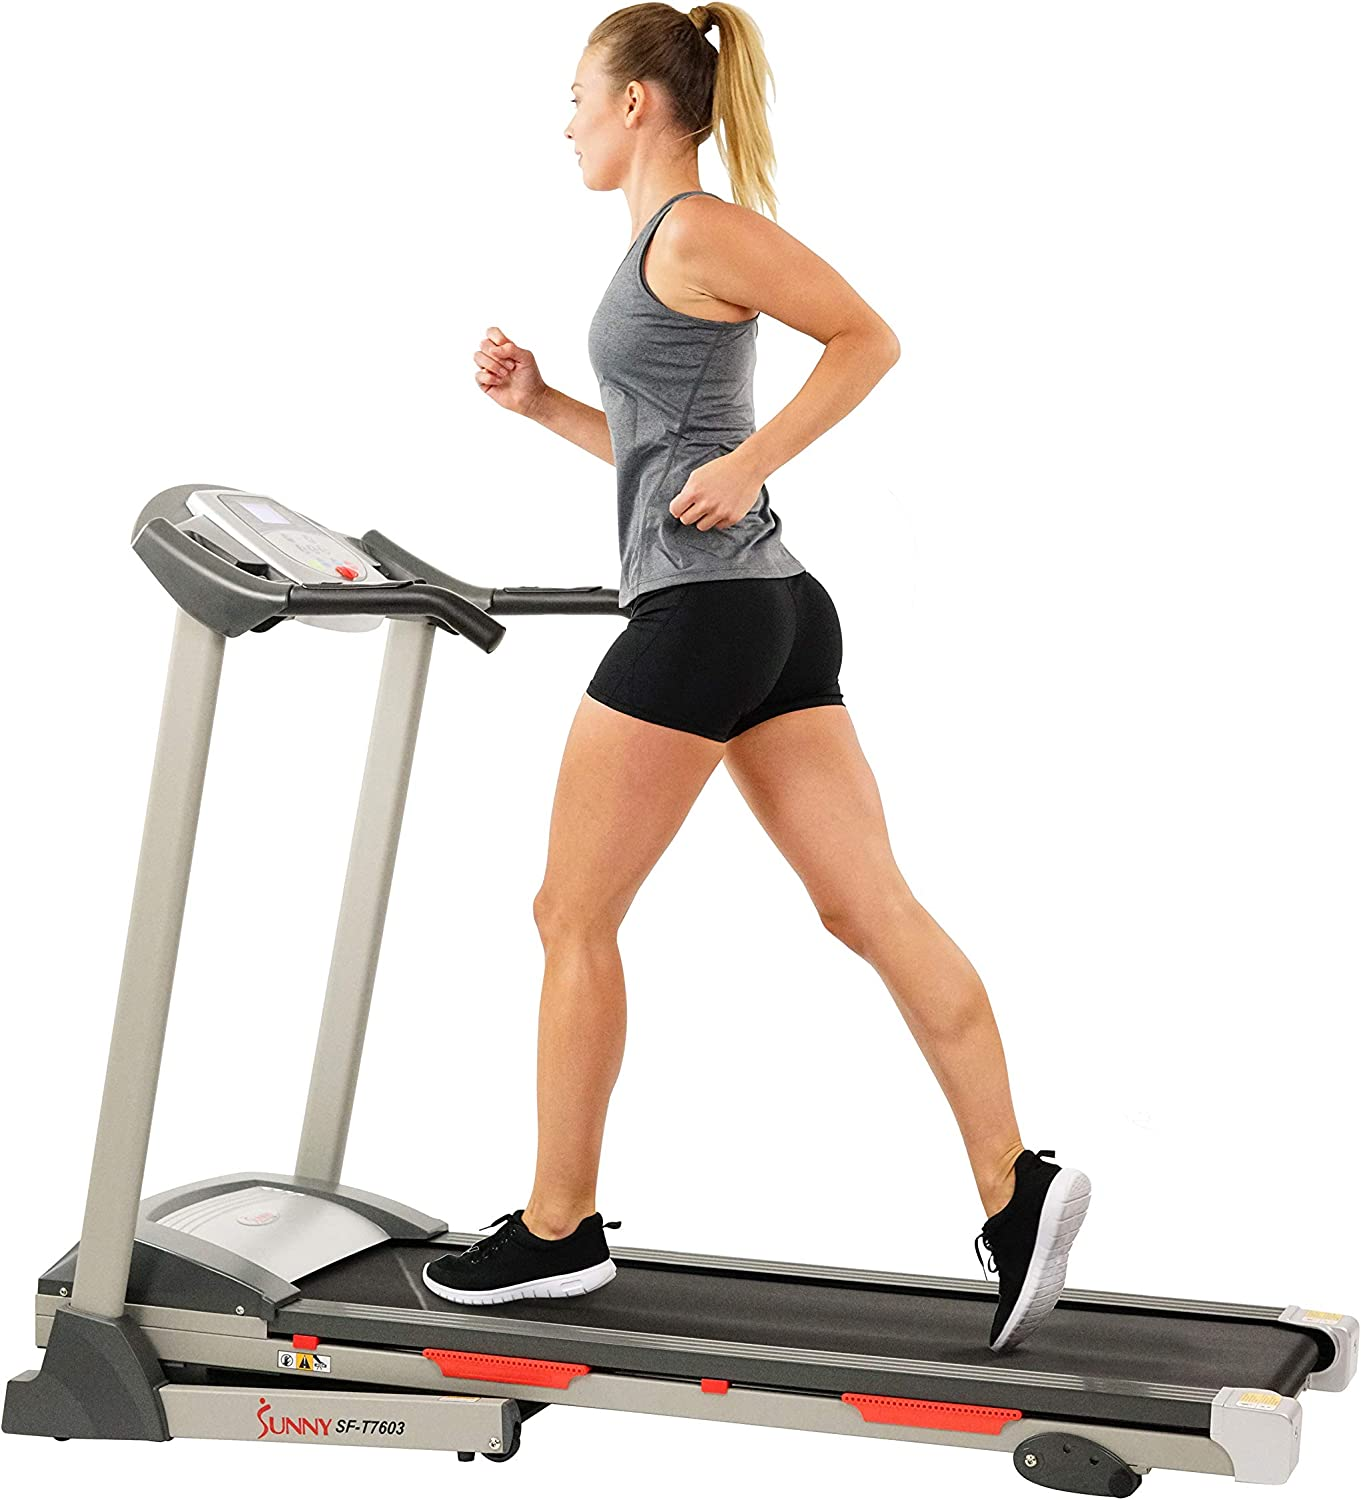 Best incline treadmill: Sunny Health & Fitness SF-T7603 Electric Treadmill